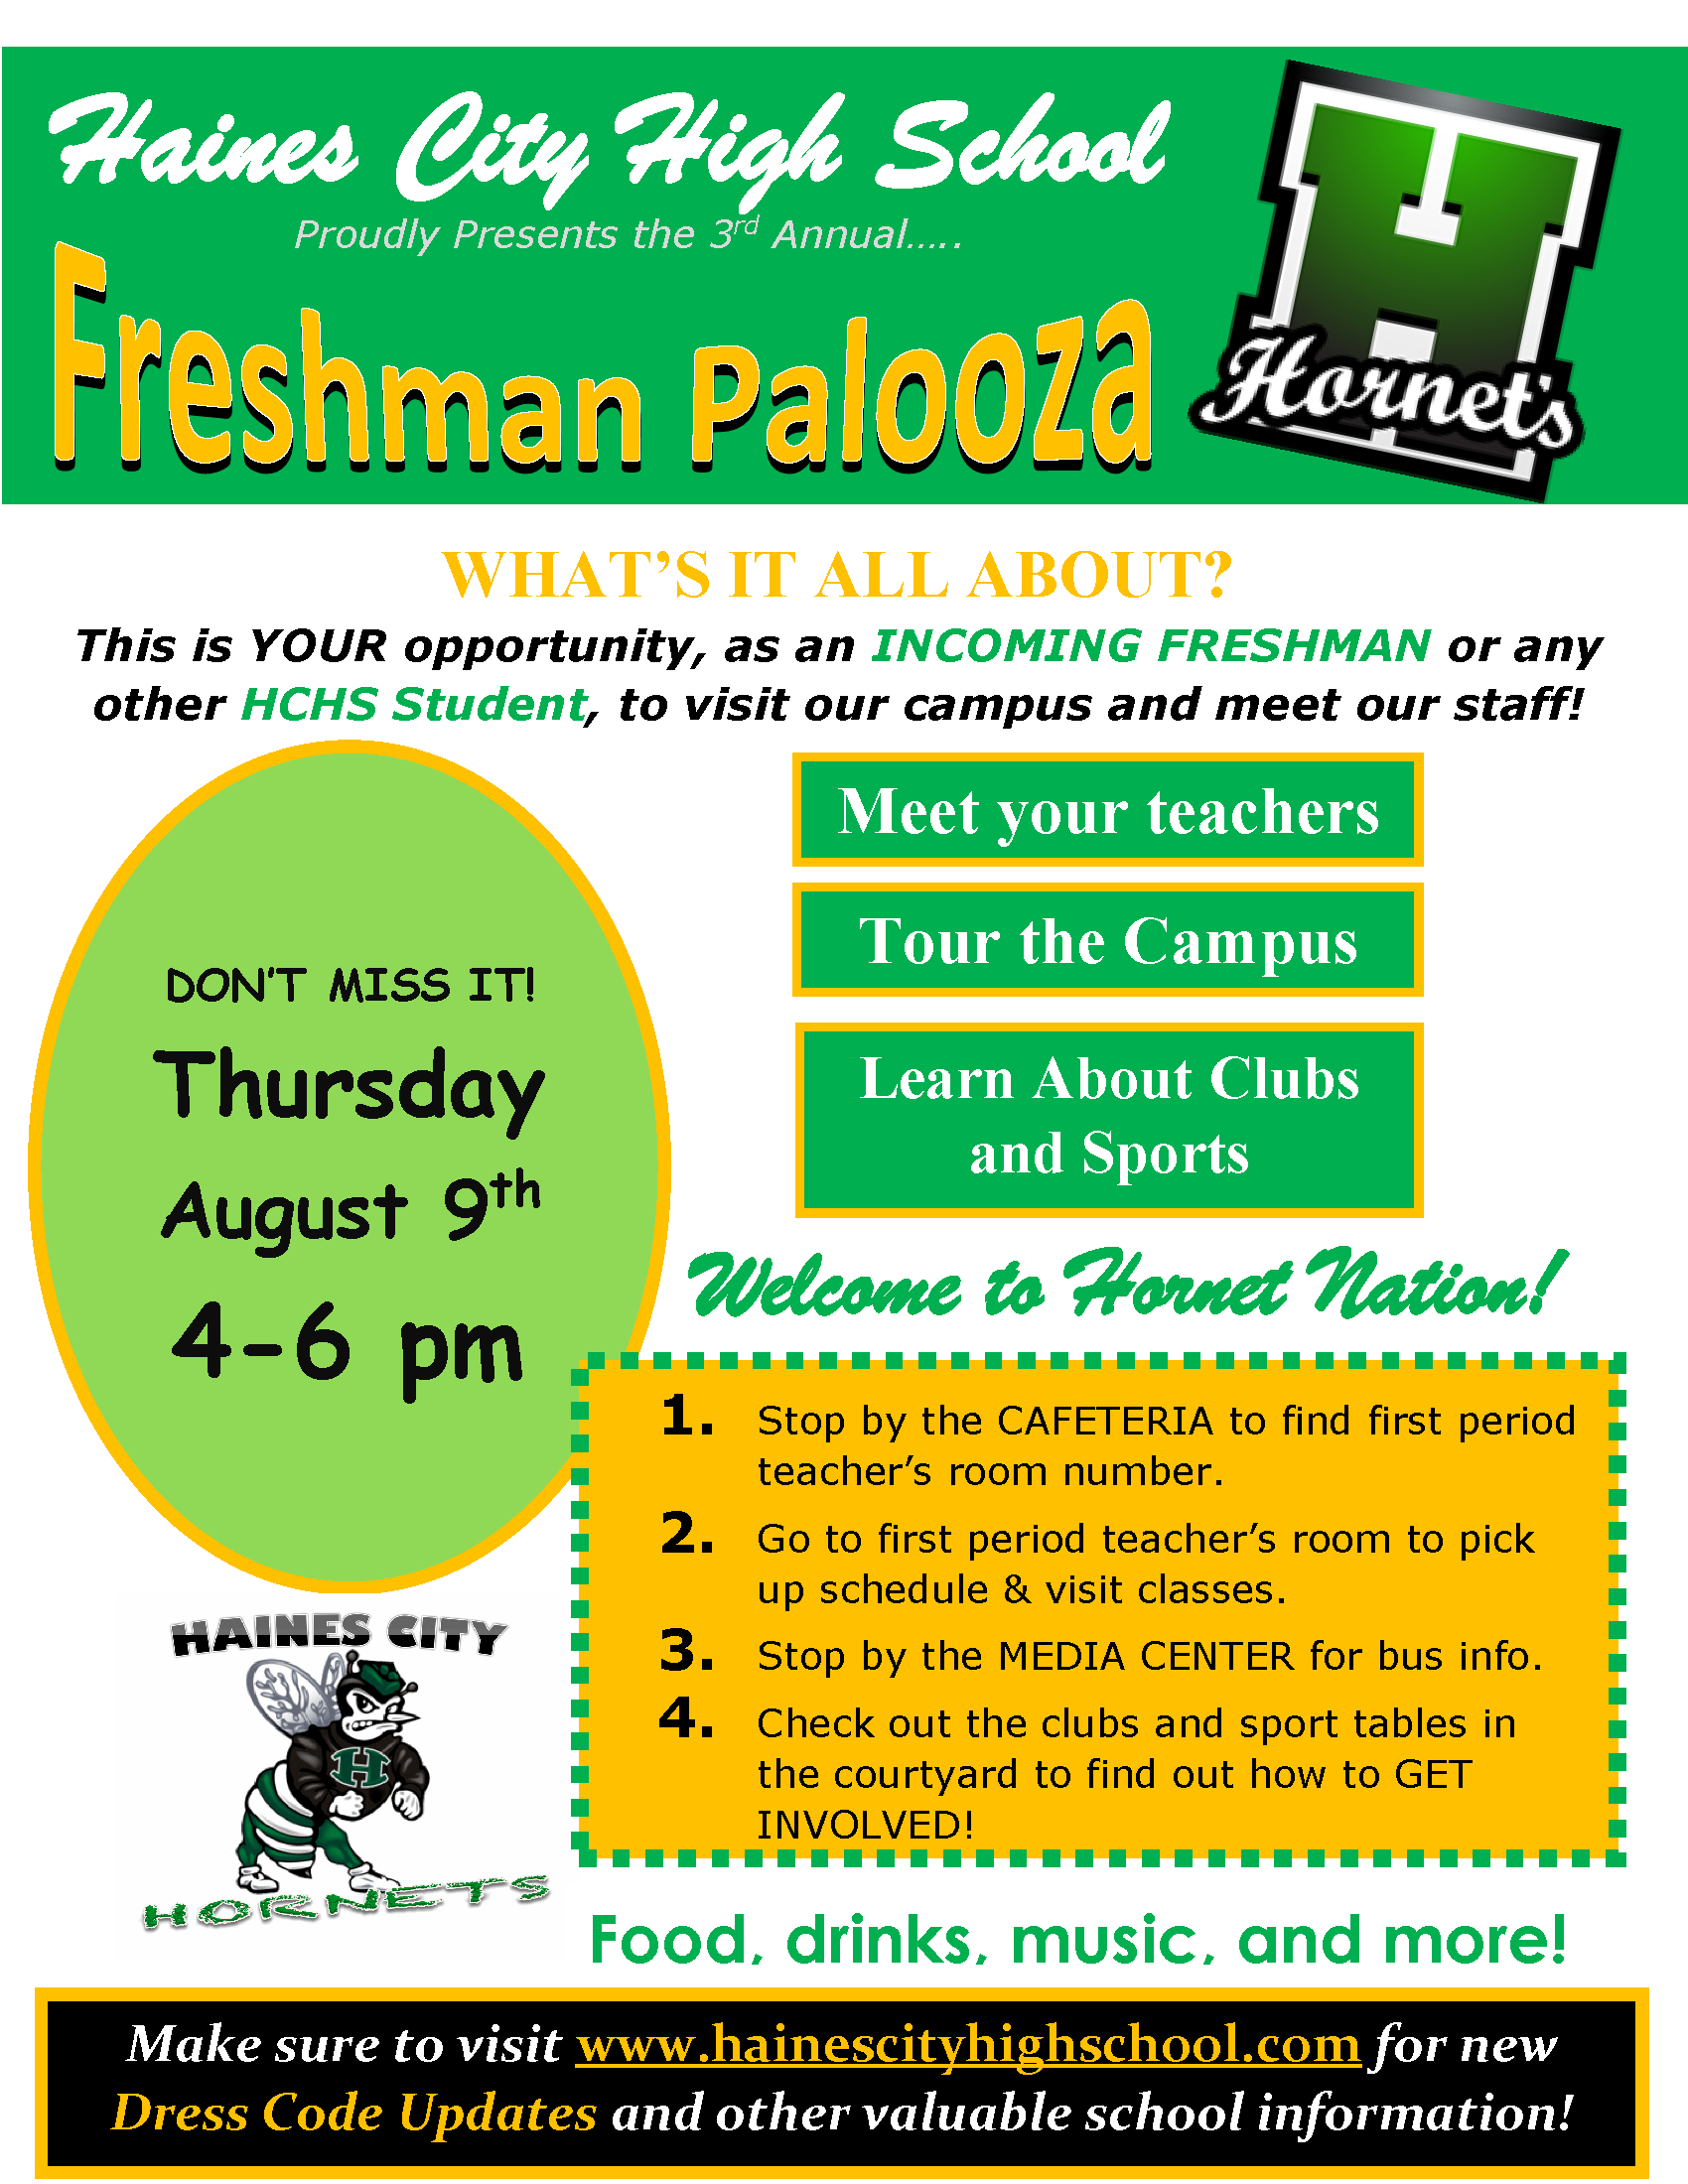 Freshman Palooza 2018 Flyer – Haines City High School in Haines City High School Bell Schedule